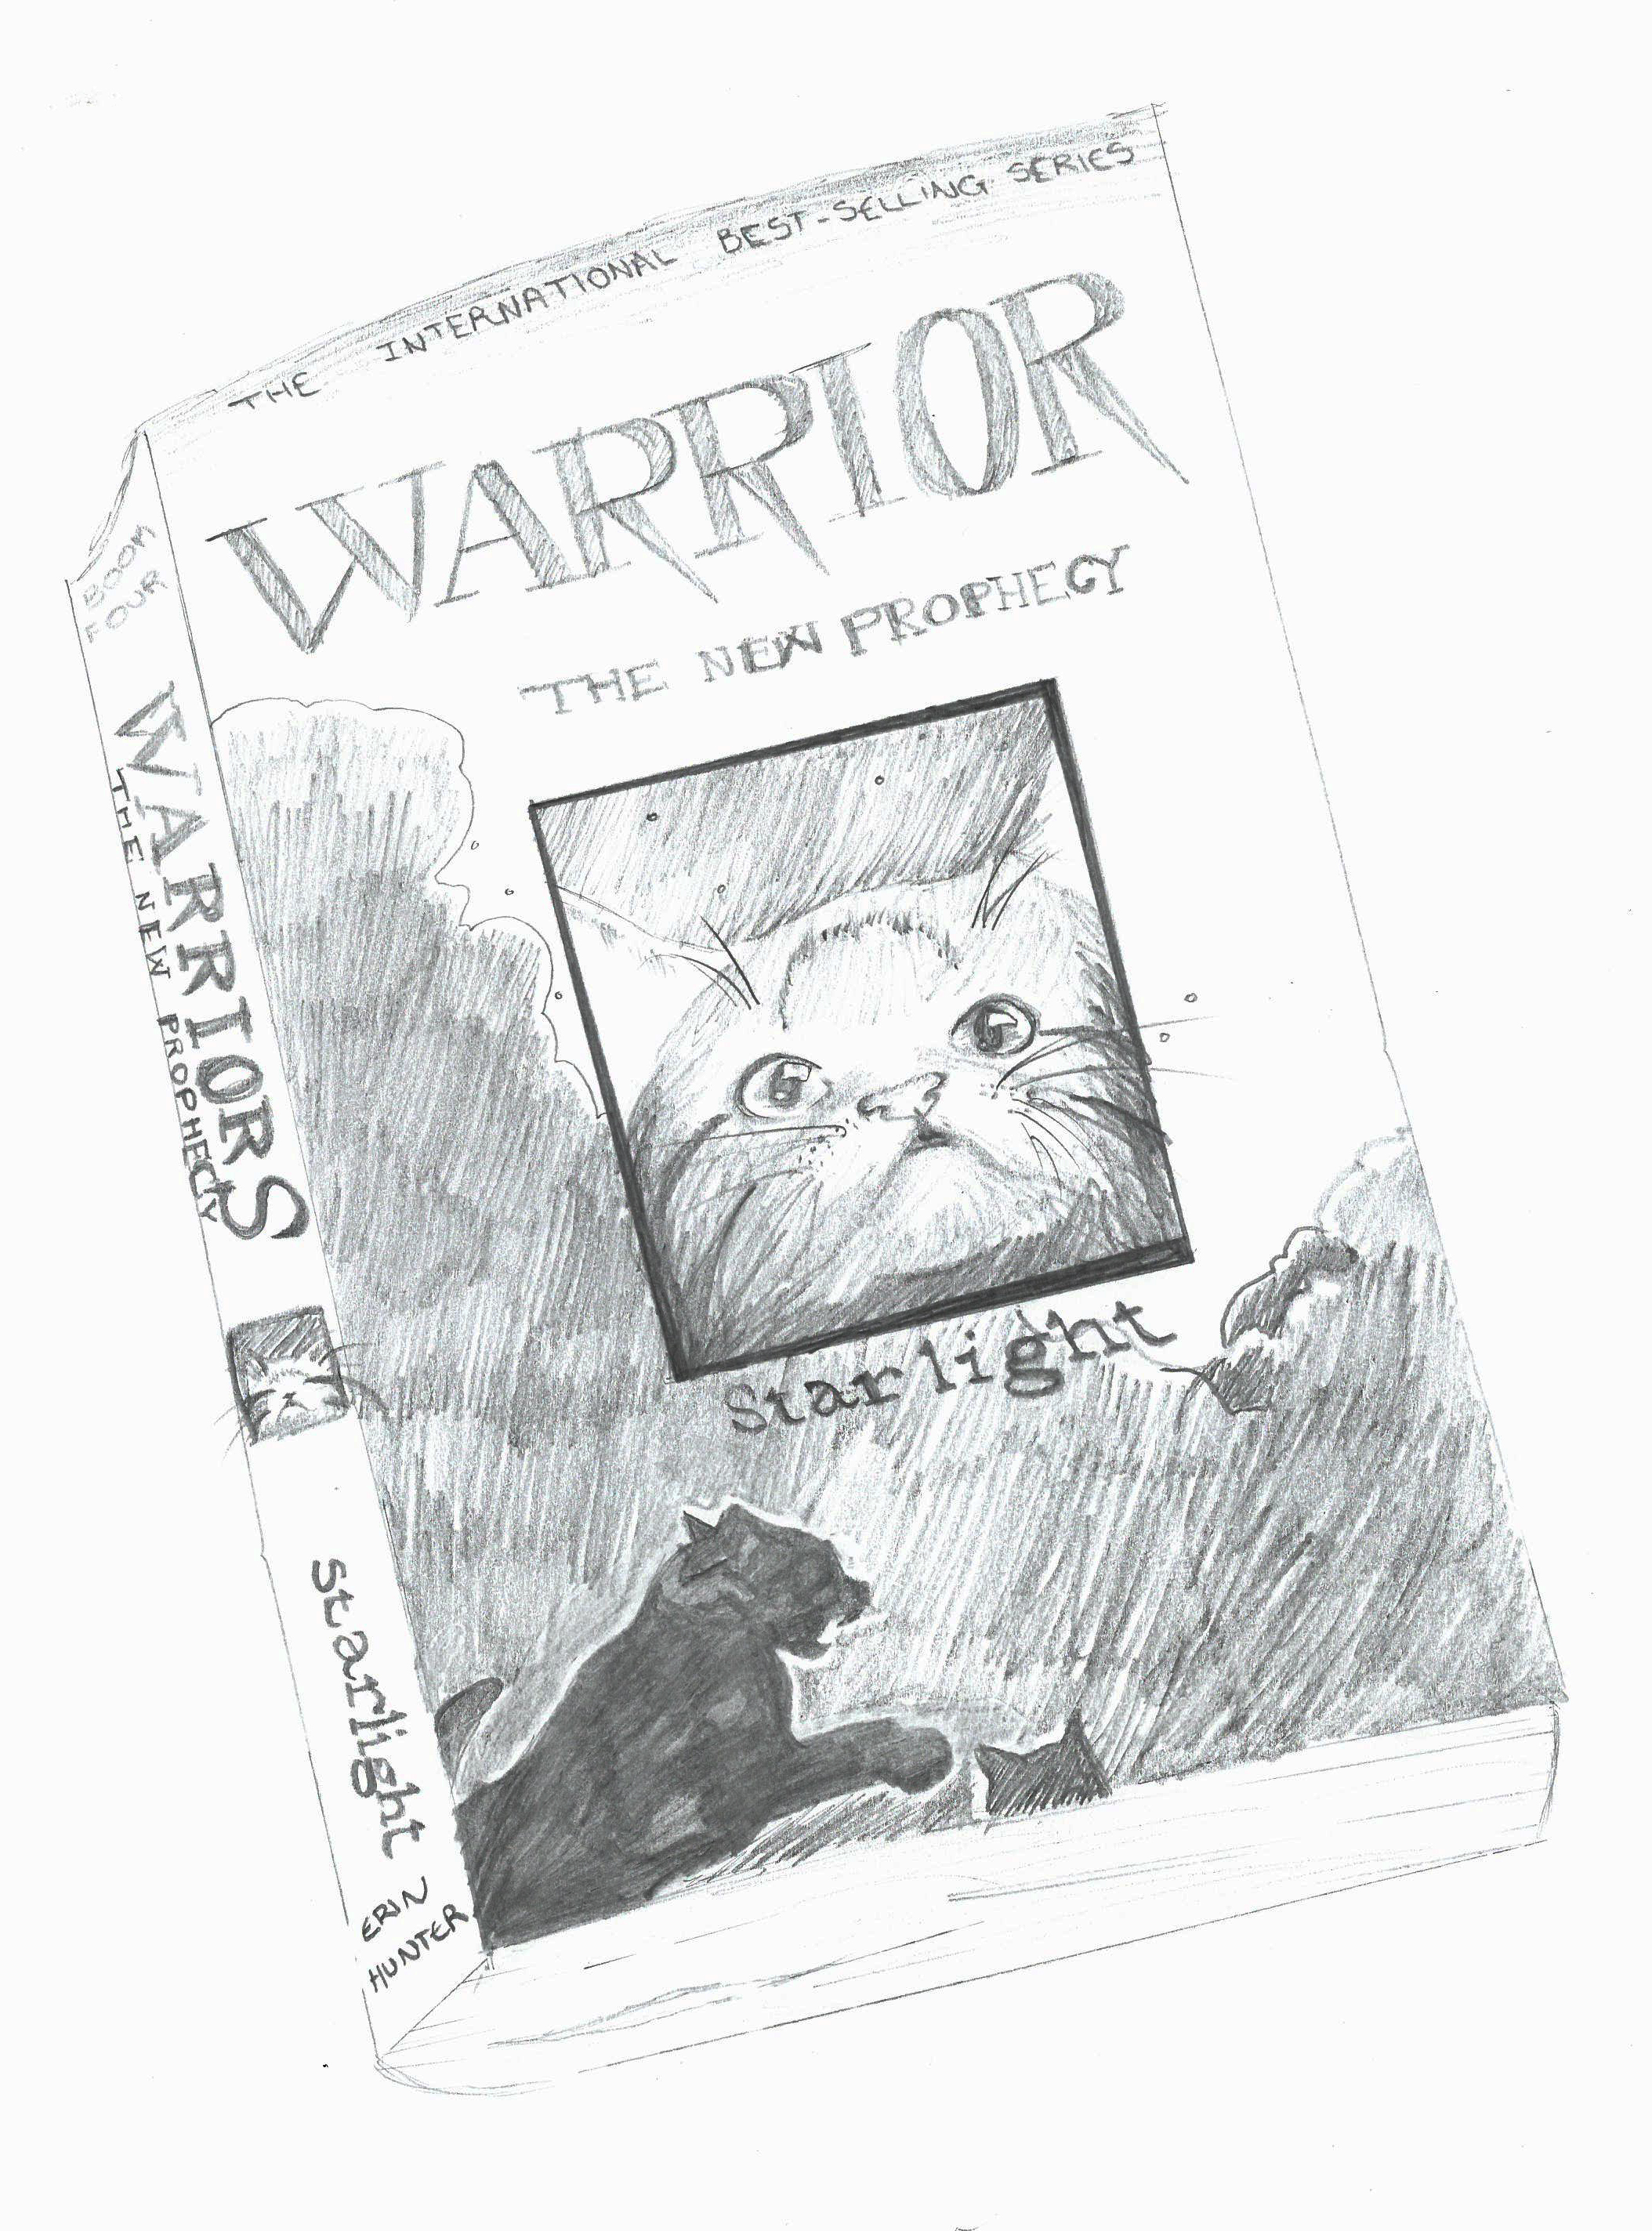 pencil drawing of a book called 'warrior' with an image of a cat on the front